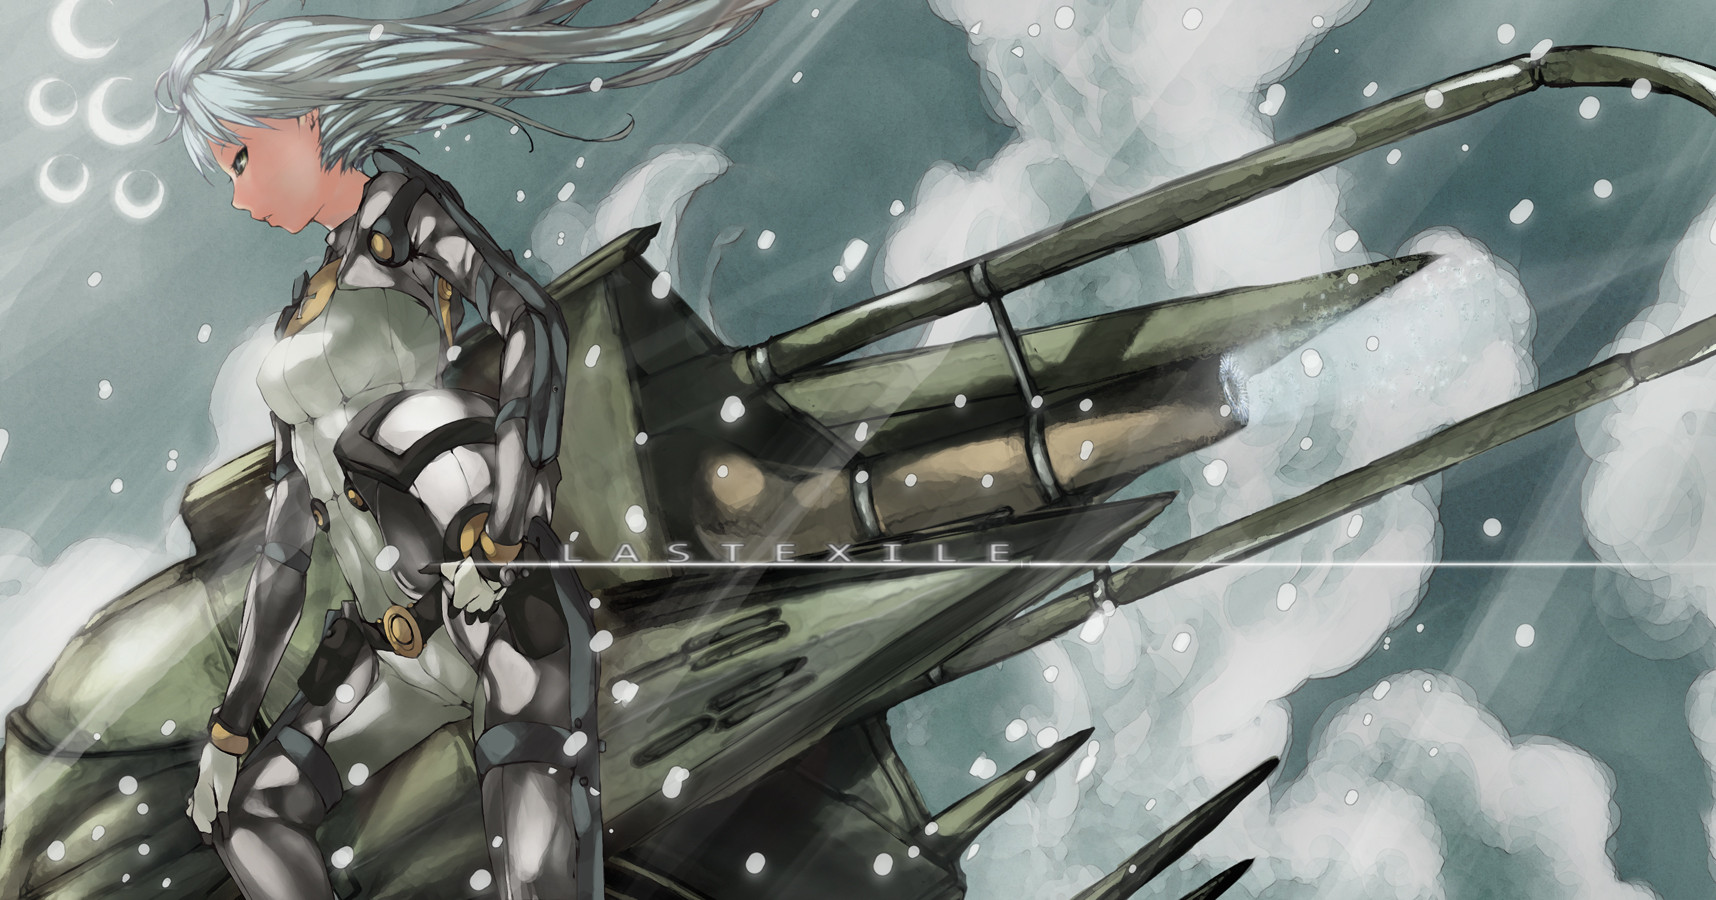 Last Exile Wallpaper and Background 1716x900 ID558064 1716x900